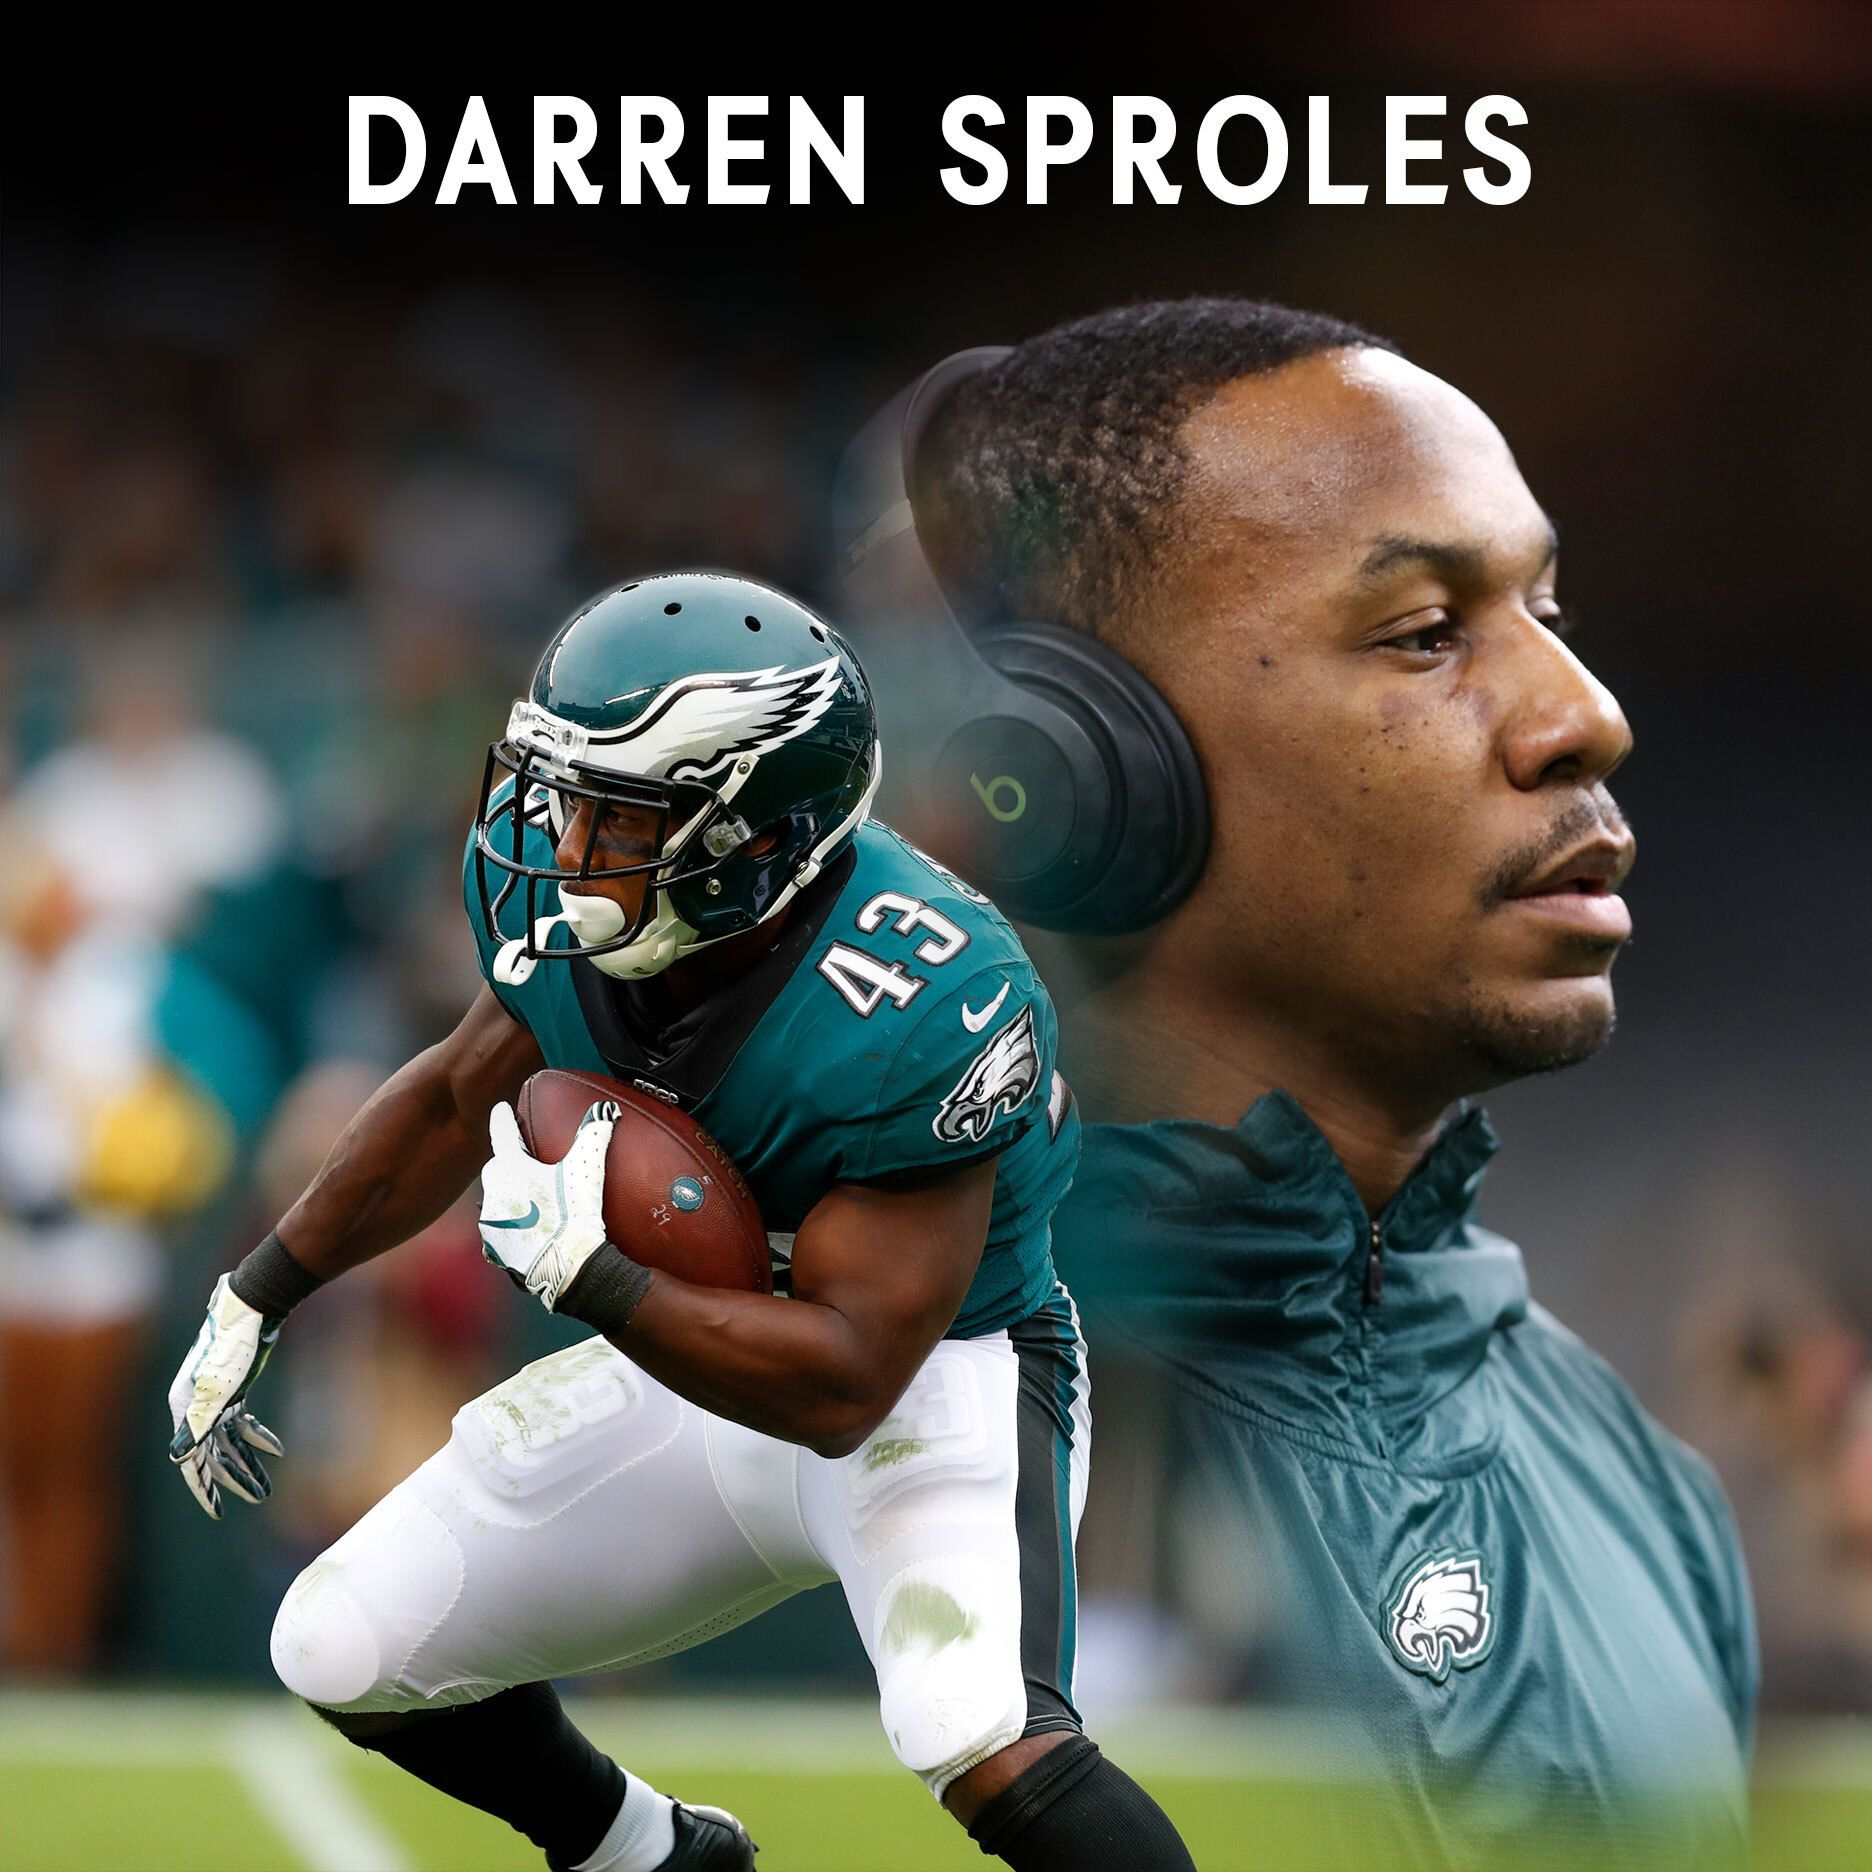 How Darren Sproles Overcame the Odds to Become an NFL Legend